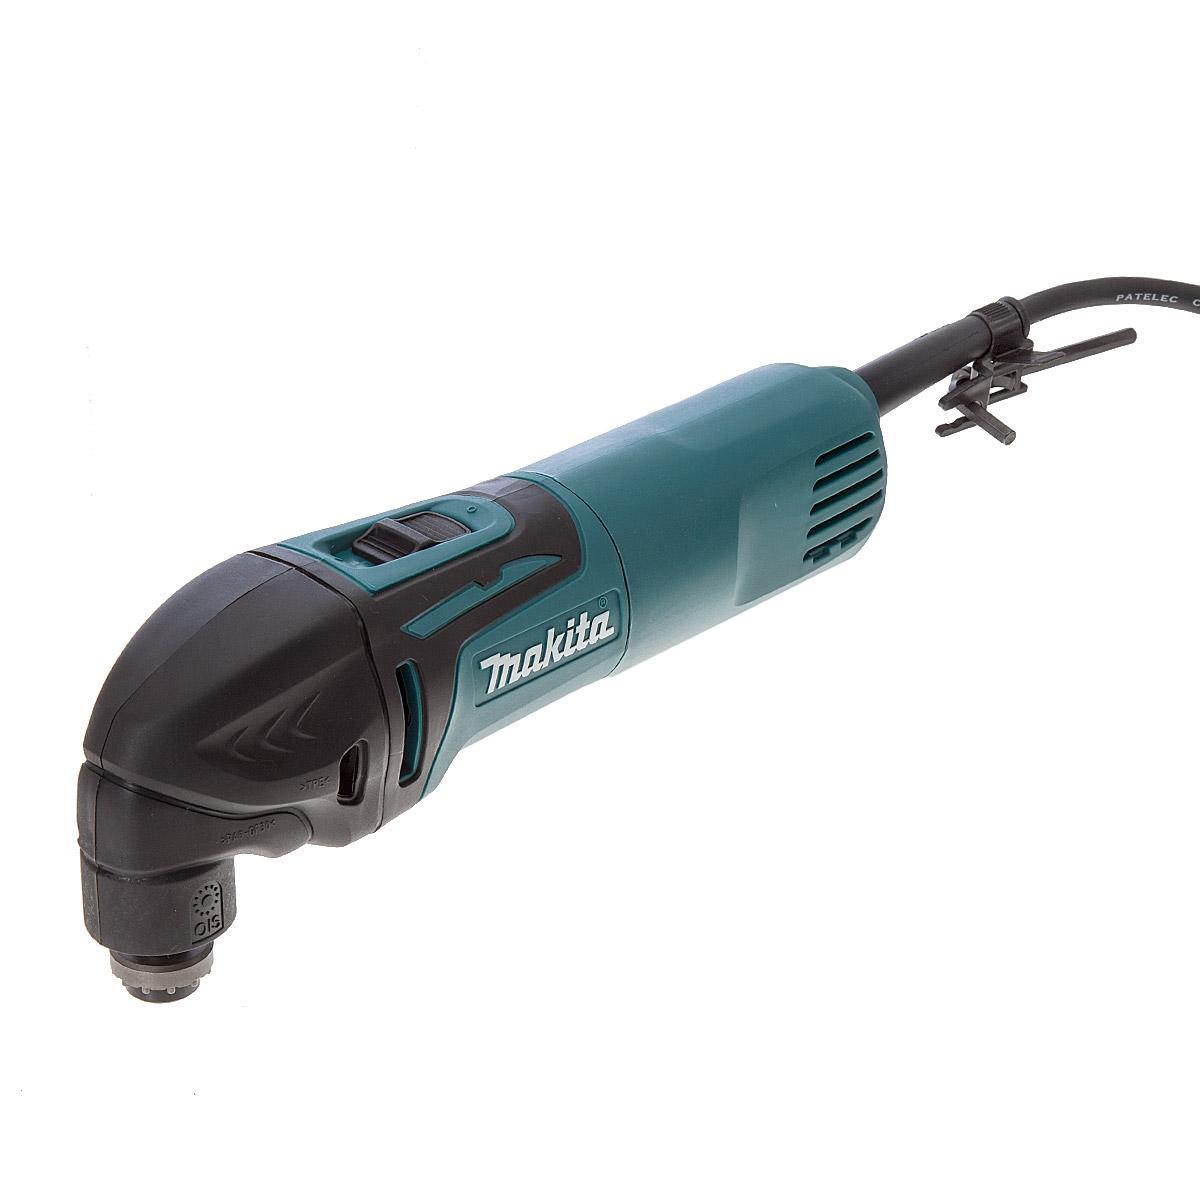 Makita TM3000C 320W Oscillating Multicutter 110V lowest price